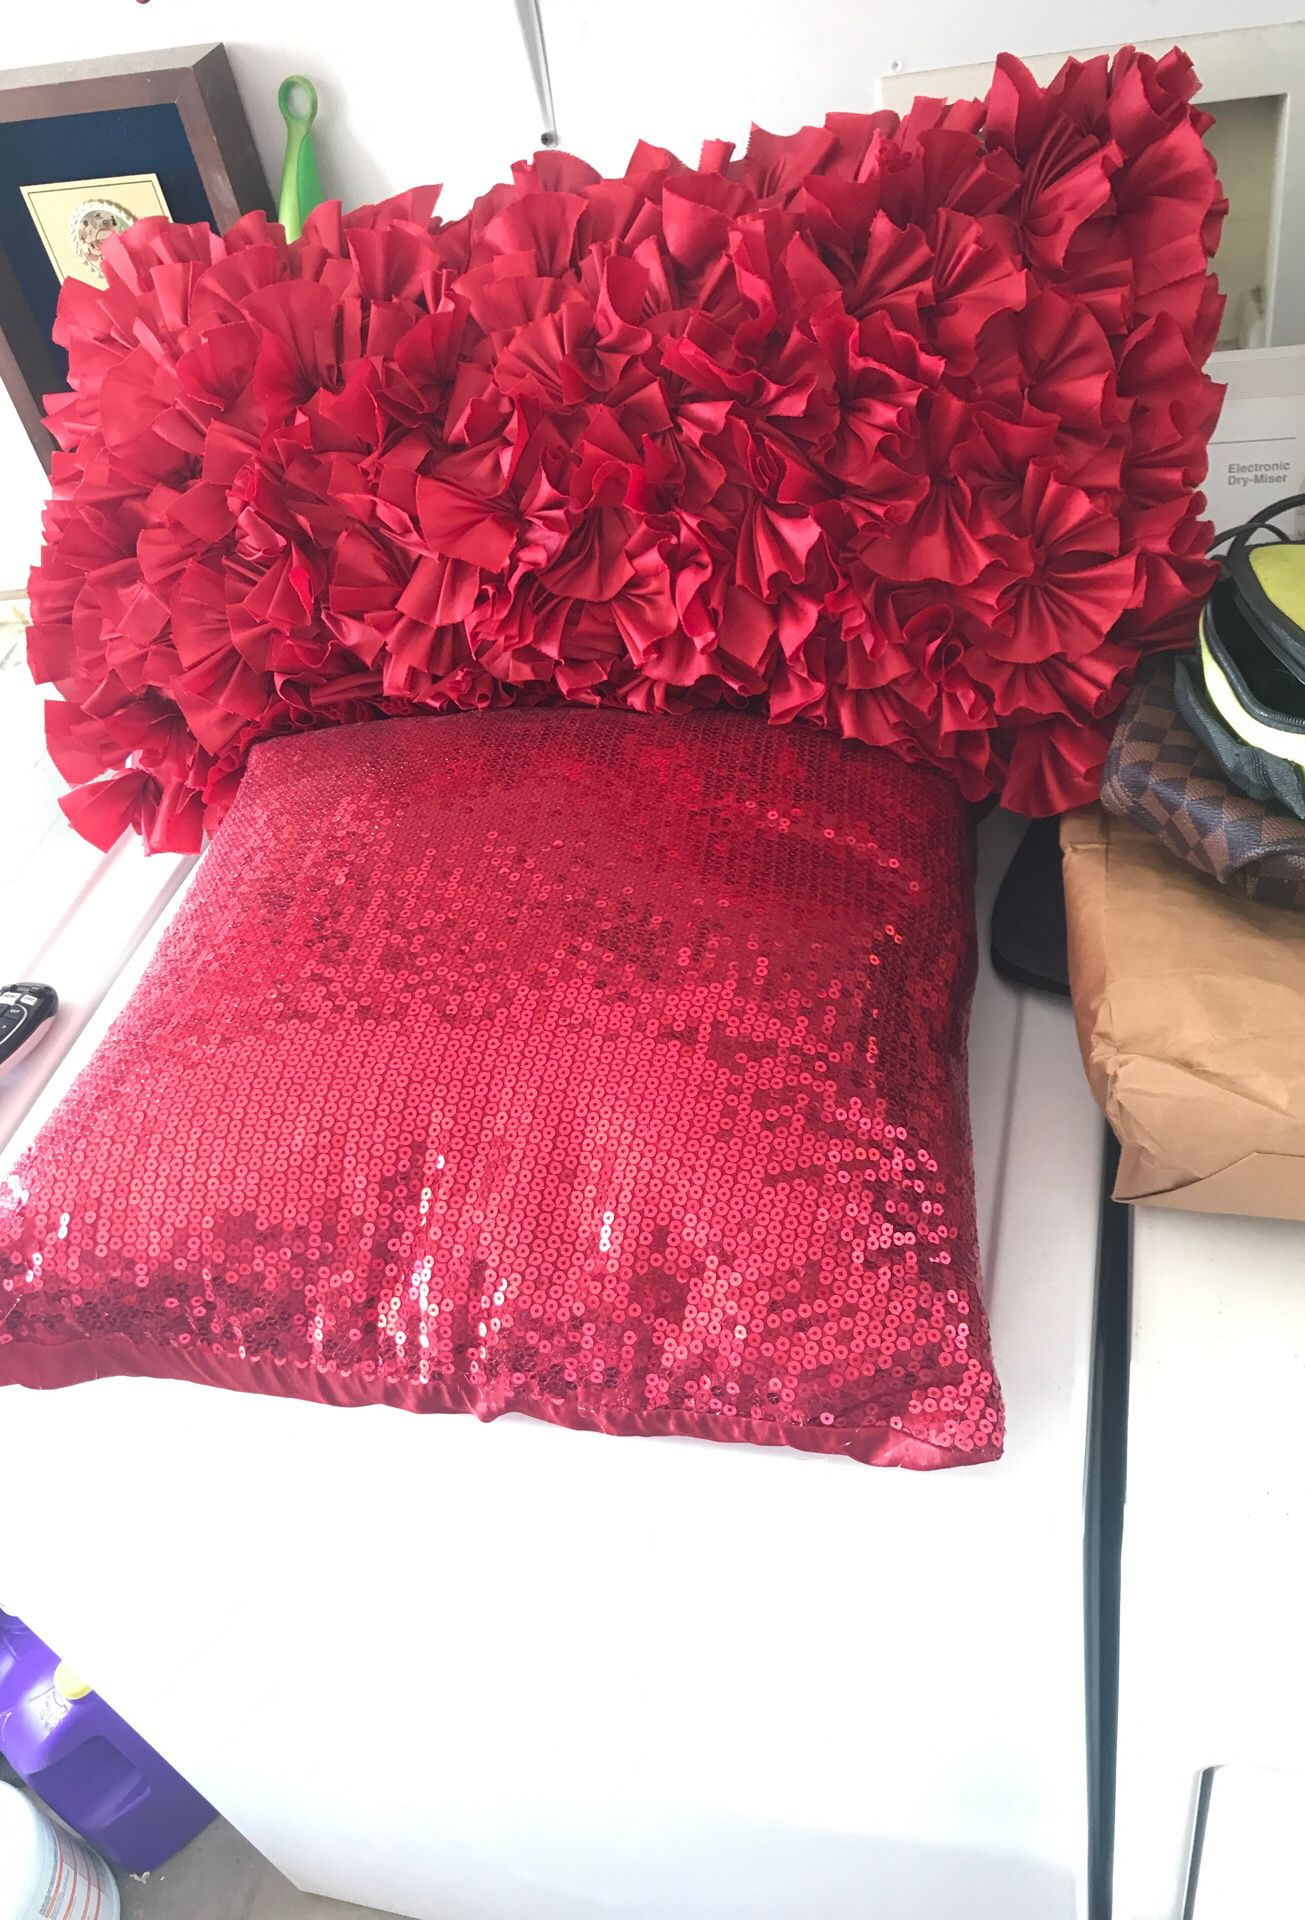 &15 two pretty in red pillows